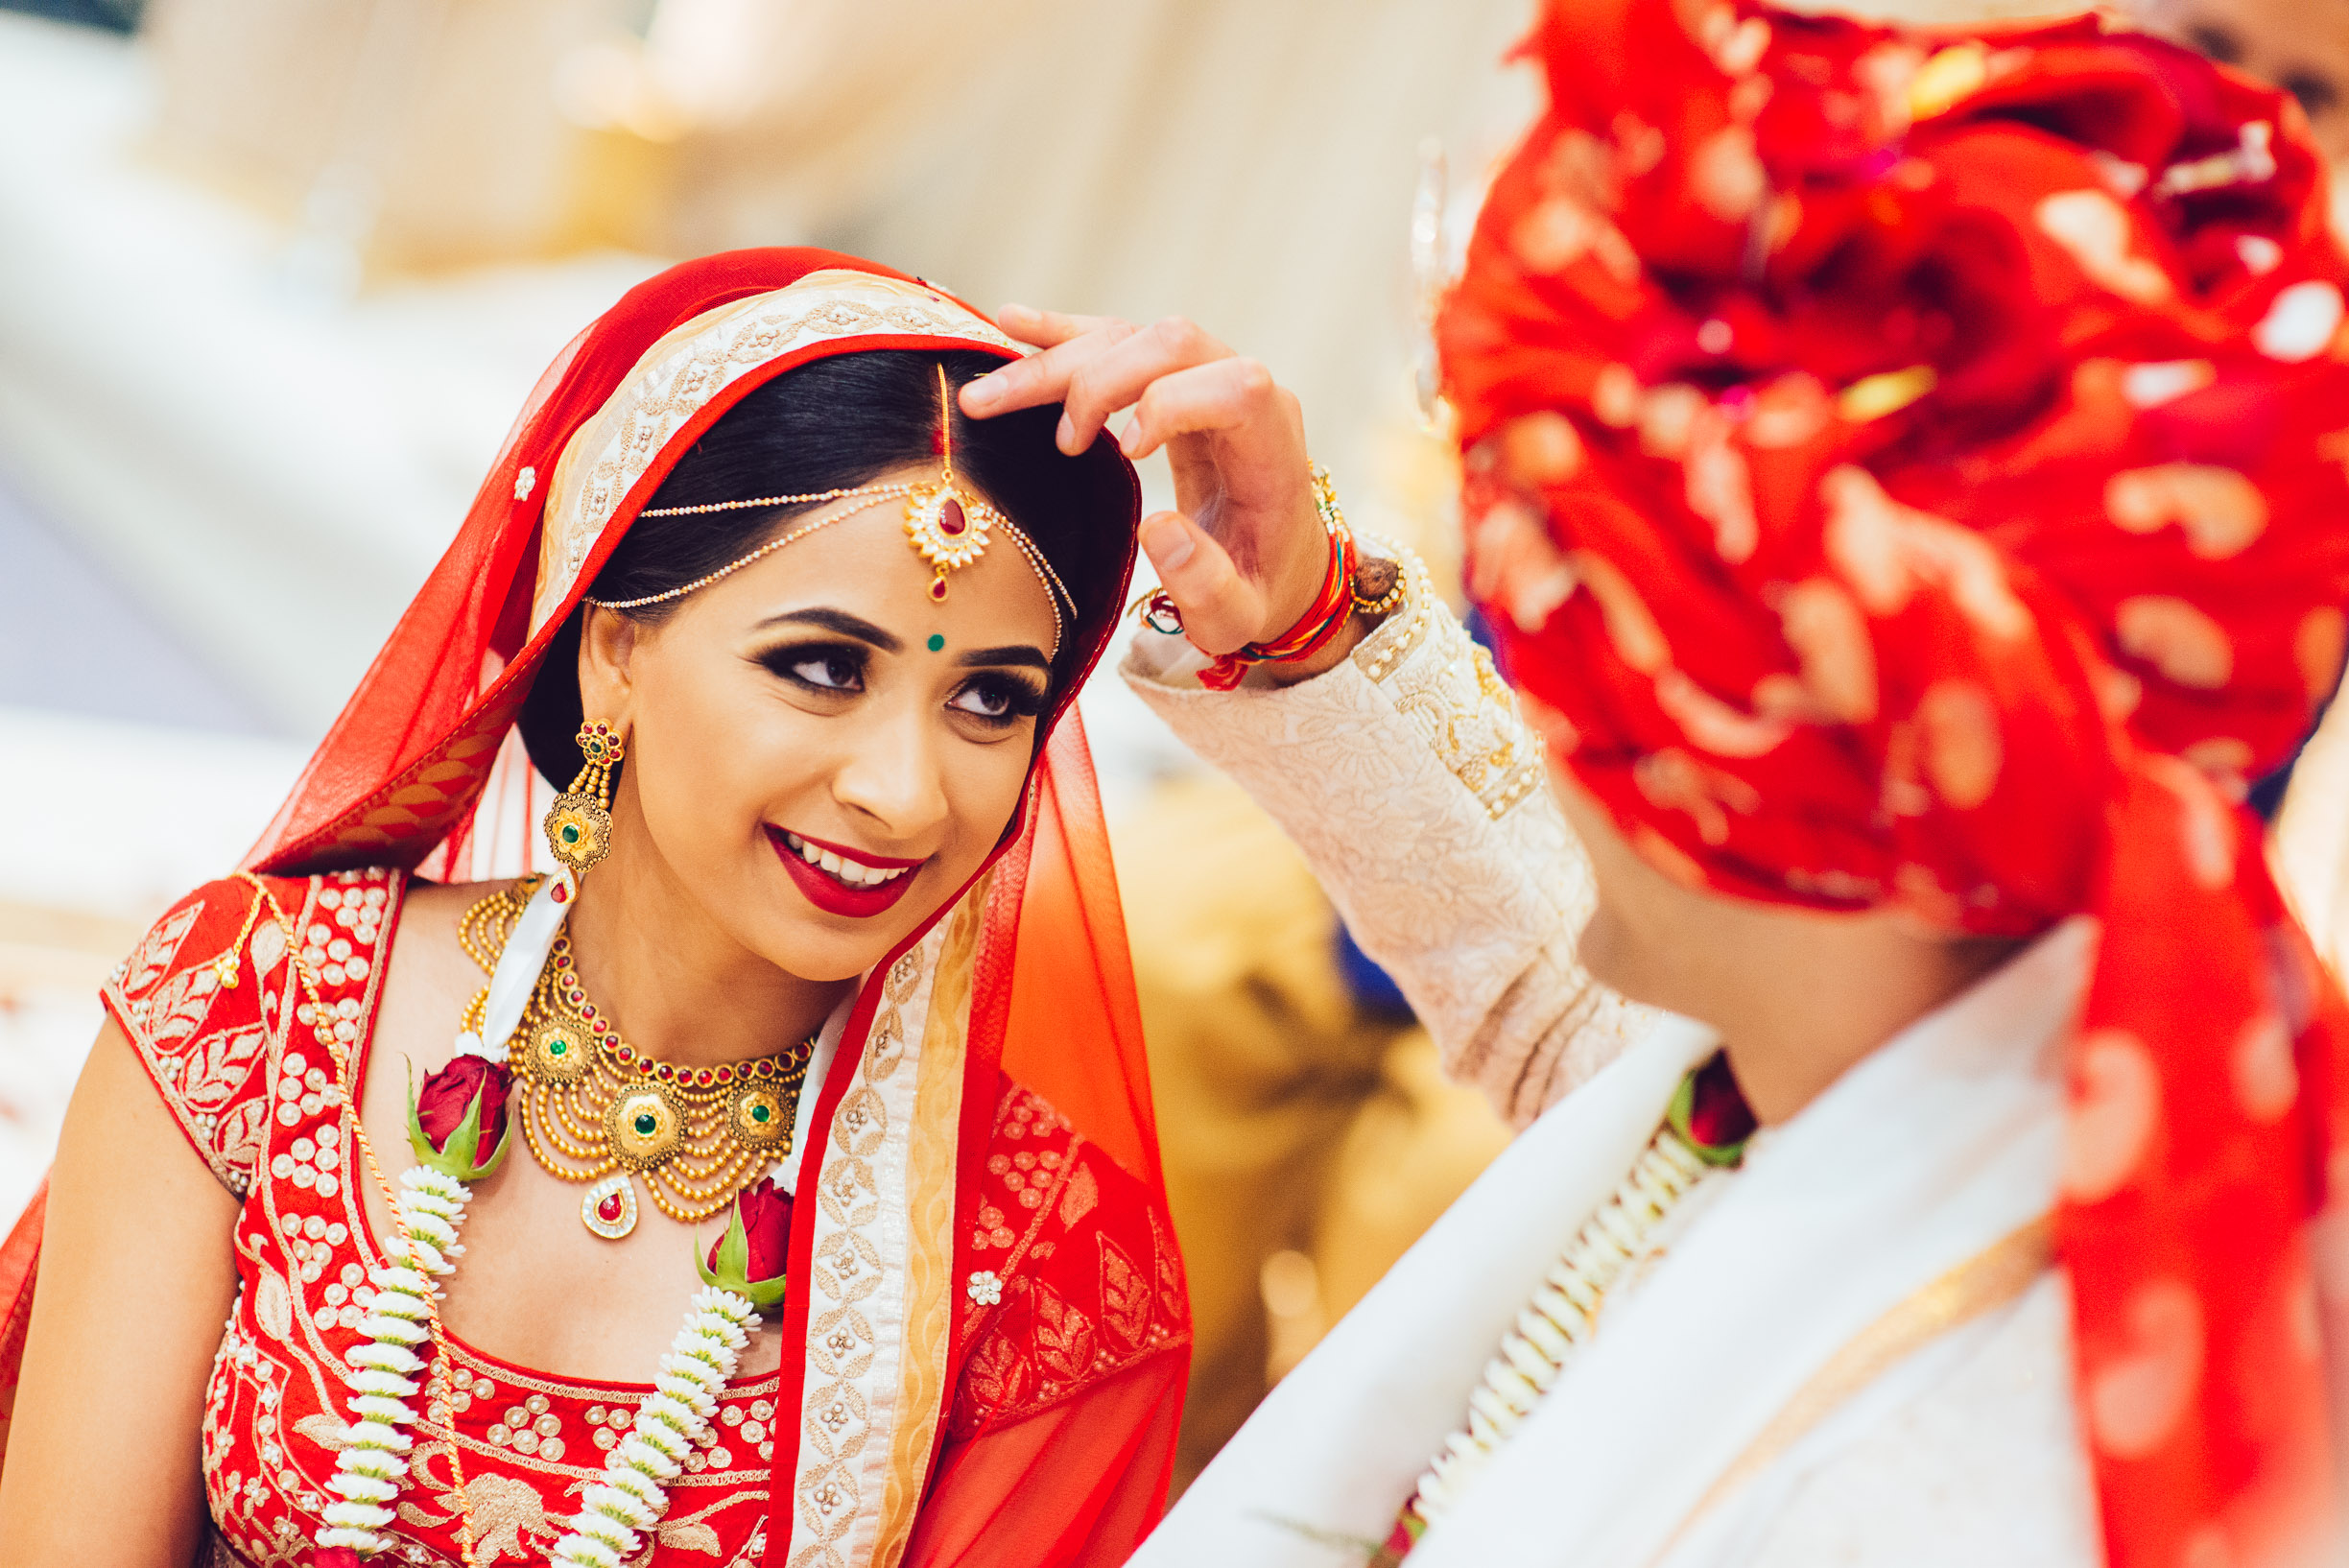 amit&ceema_eden_moments_wedding_photography-14